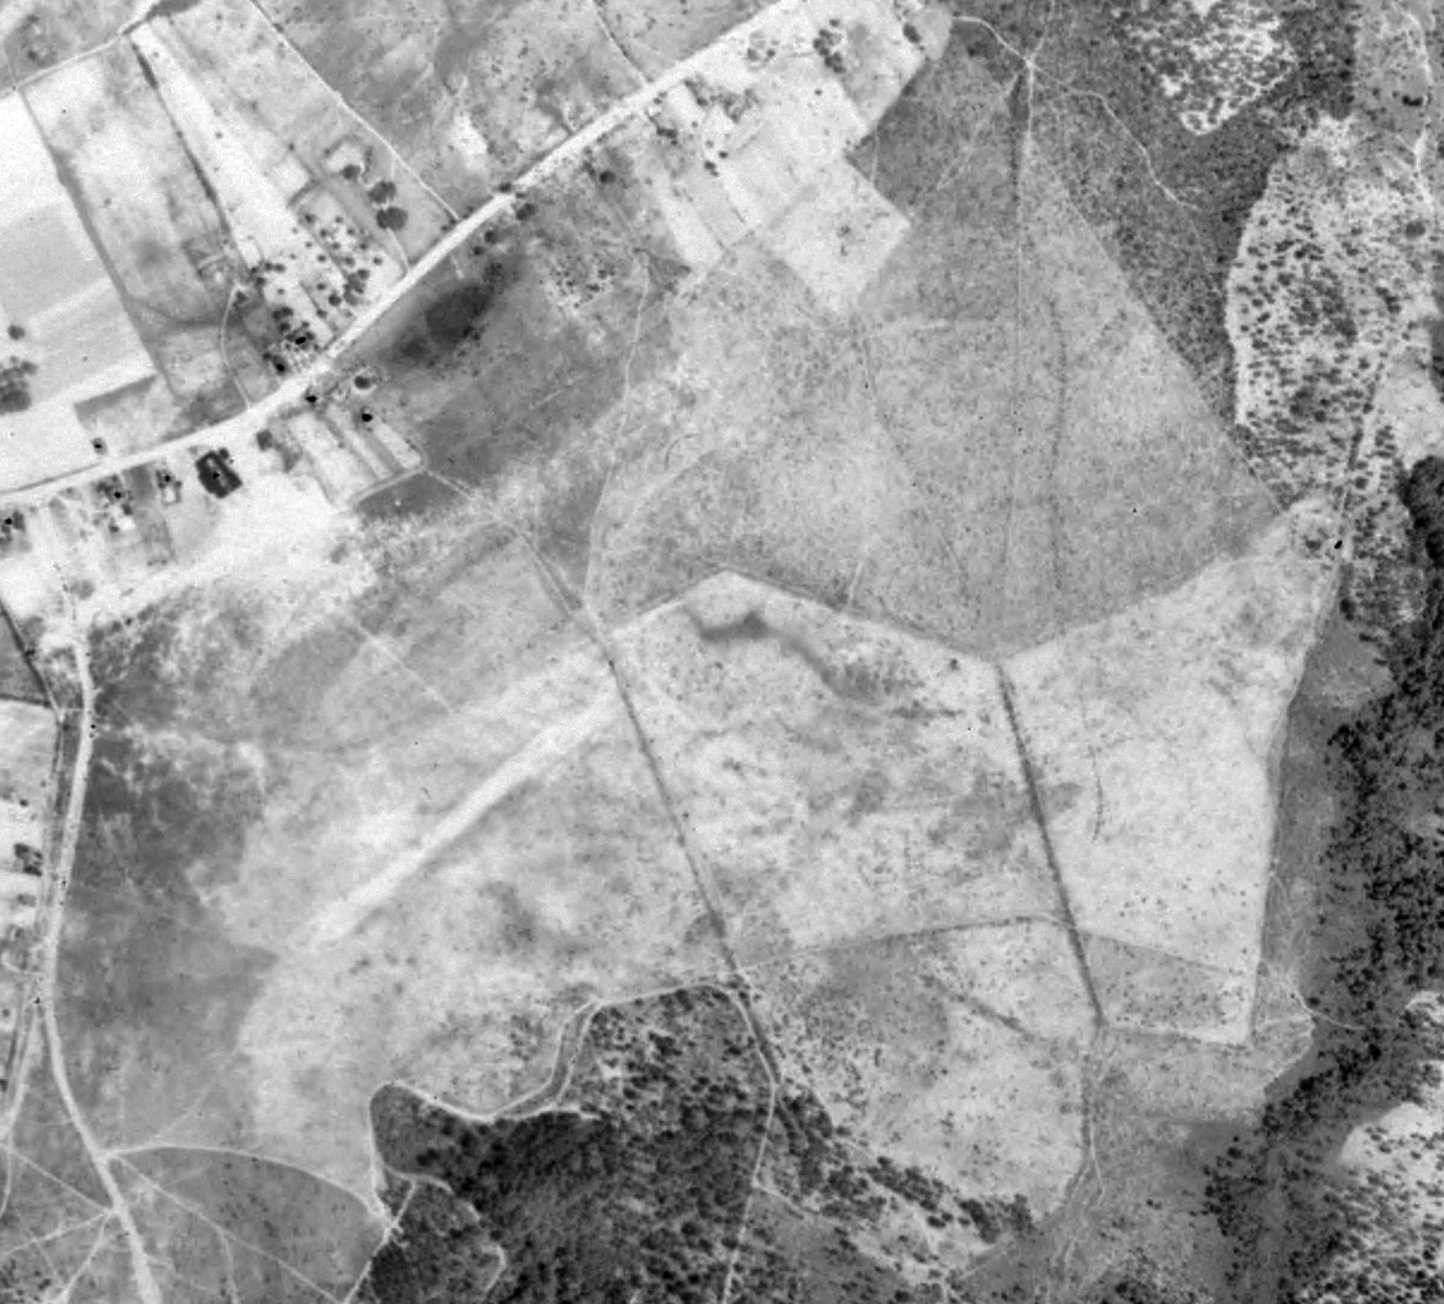 A 5 13 38 USGS Aerial View Courtesy Of Jim Preston Depicted Miller Field Possibly After Its Closing